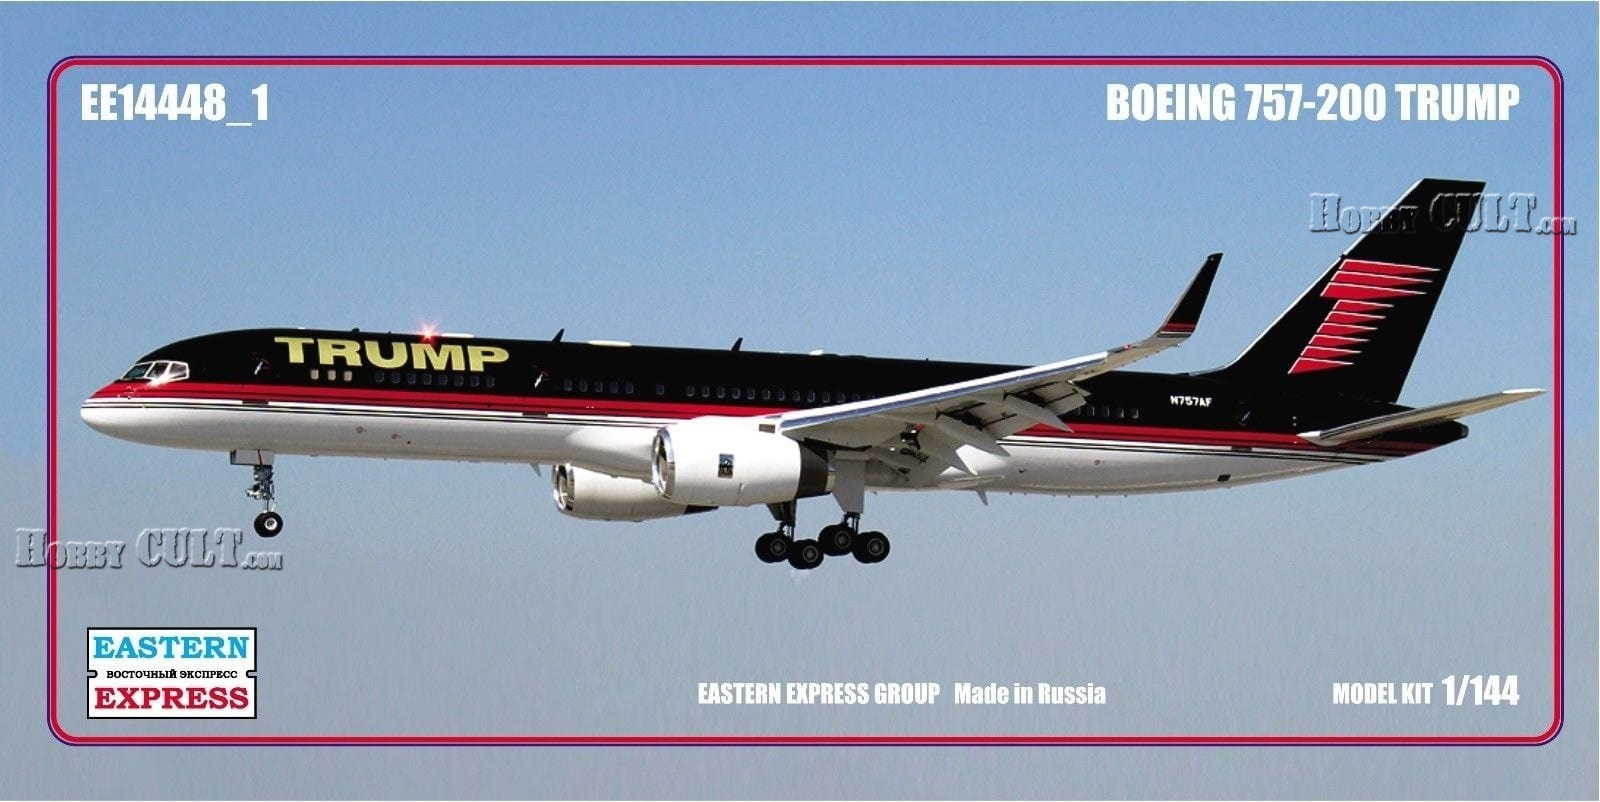 1:144 Boeing 757-200 Trump (Limited Edition)